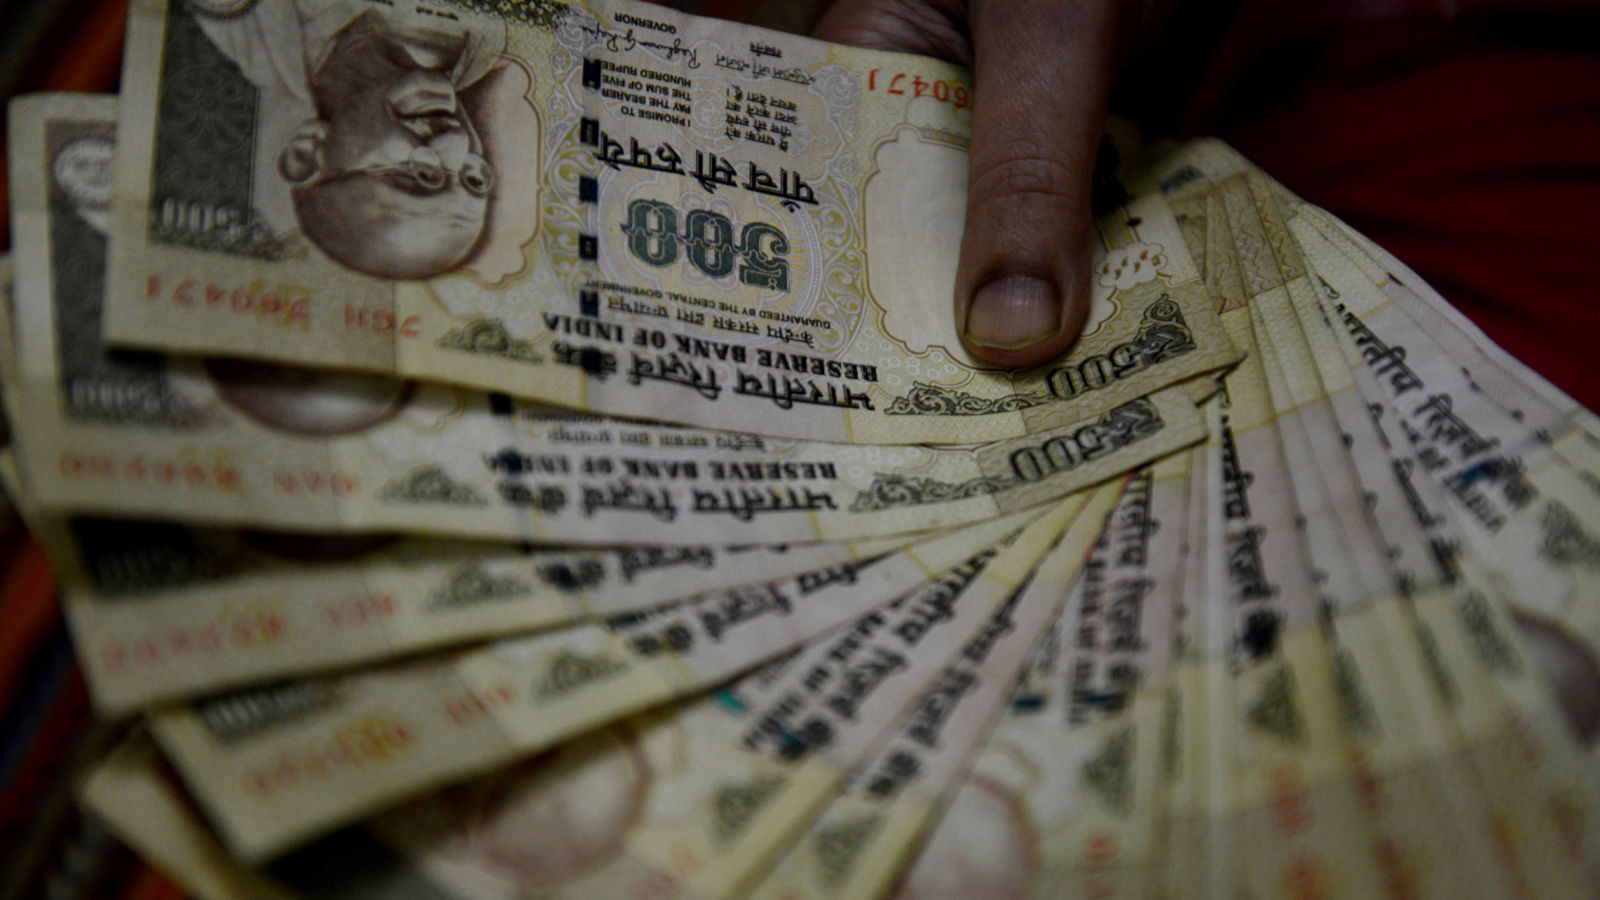 "An Indian woman holds 500 INR currency notes at her home in Faridabad, a suburb of New Delhi, on November 8, 2016.  Indian Prime Minister Narendra Modi announced late November 8 that 500 and 1,000 ($15) rupee notes will be withdrawn from financial circulation from midnight, in a bid to tackle corruption. ""To break the grip of corruption and black money, we have decided that the 500 and 1,000 rupee currency notes presently in use will no longer be legal tender from midnight ie 8 November, 2016,"" Modi said in a special televised address to the nation. / AFP / MONEY SHARMA        (Photo credit should read MONEY SHARMA/AFP/Getty Images)"